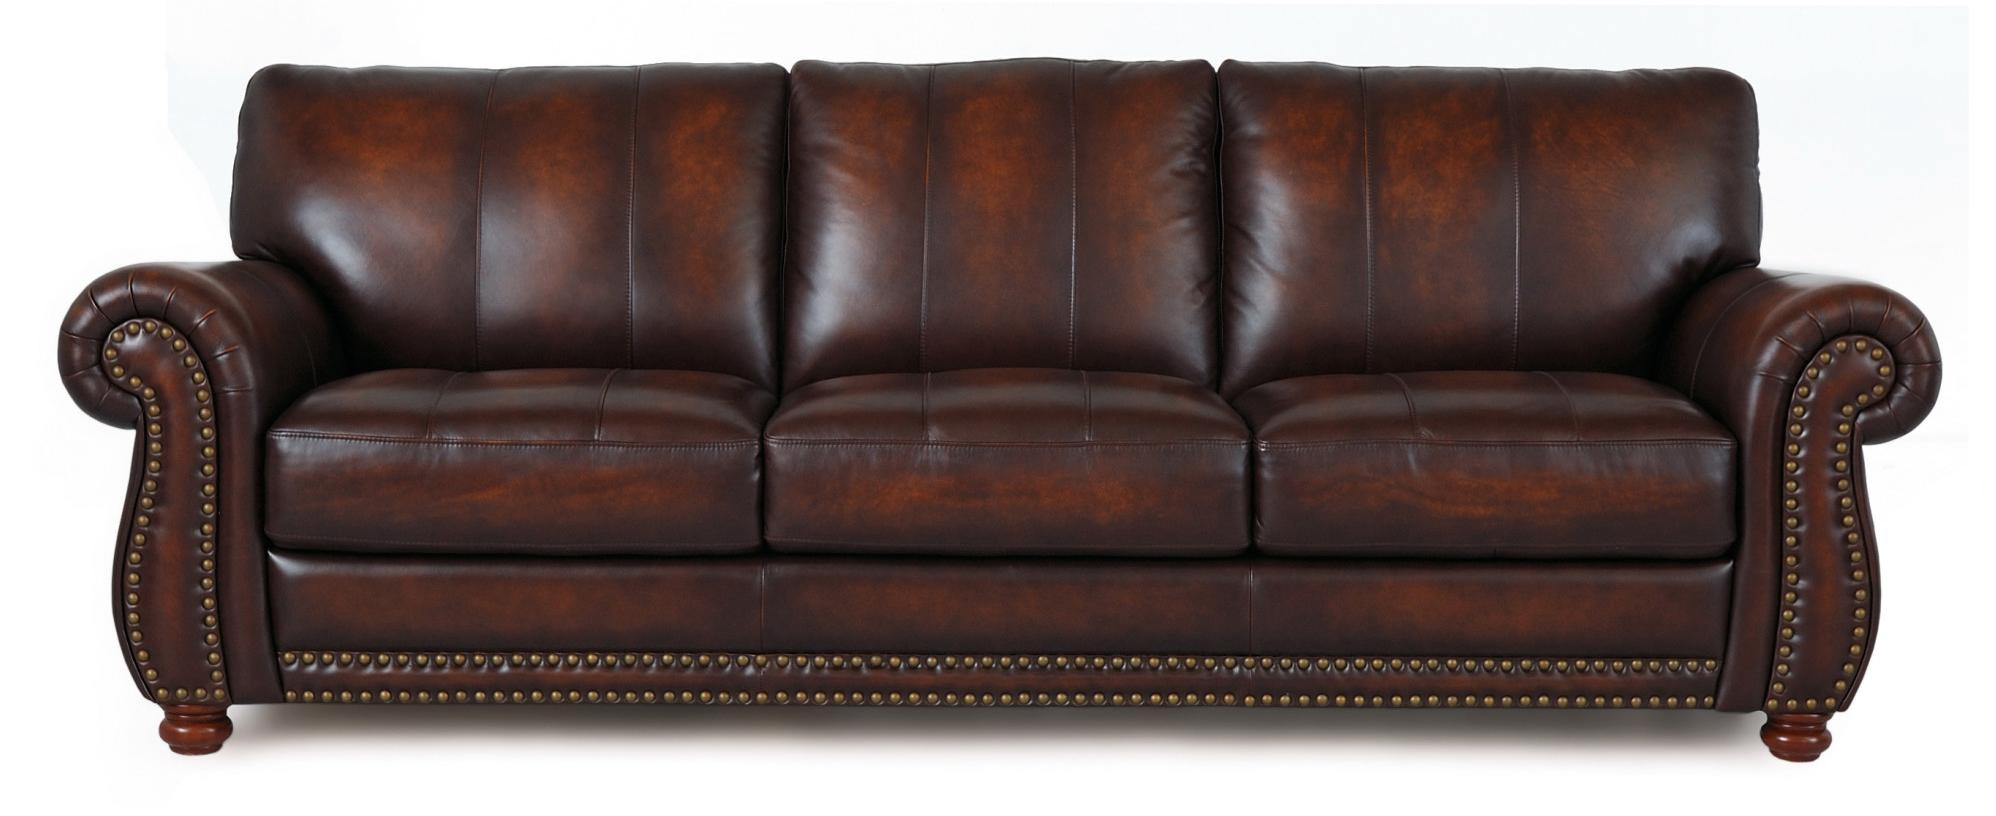 Futura leather futura leather 7530 traditional leather for Traditional leather sofas furniture